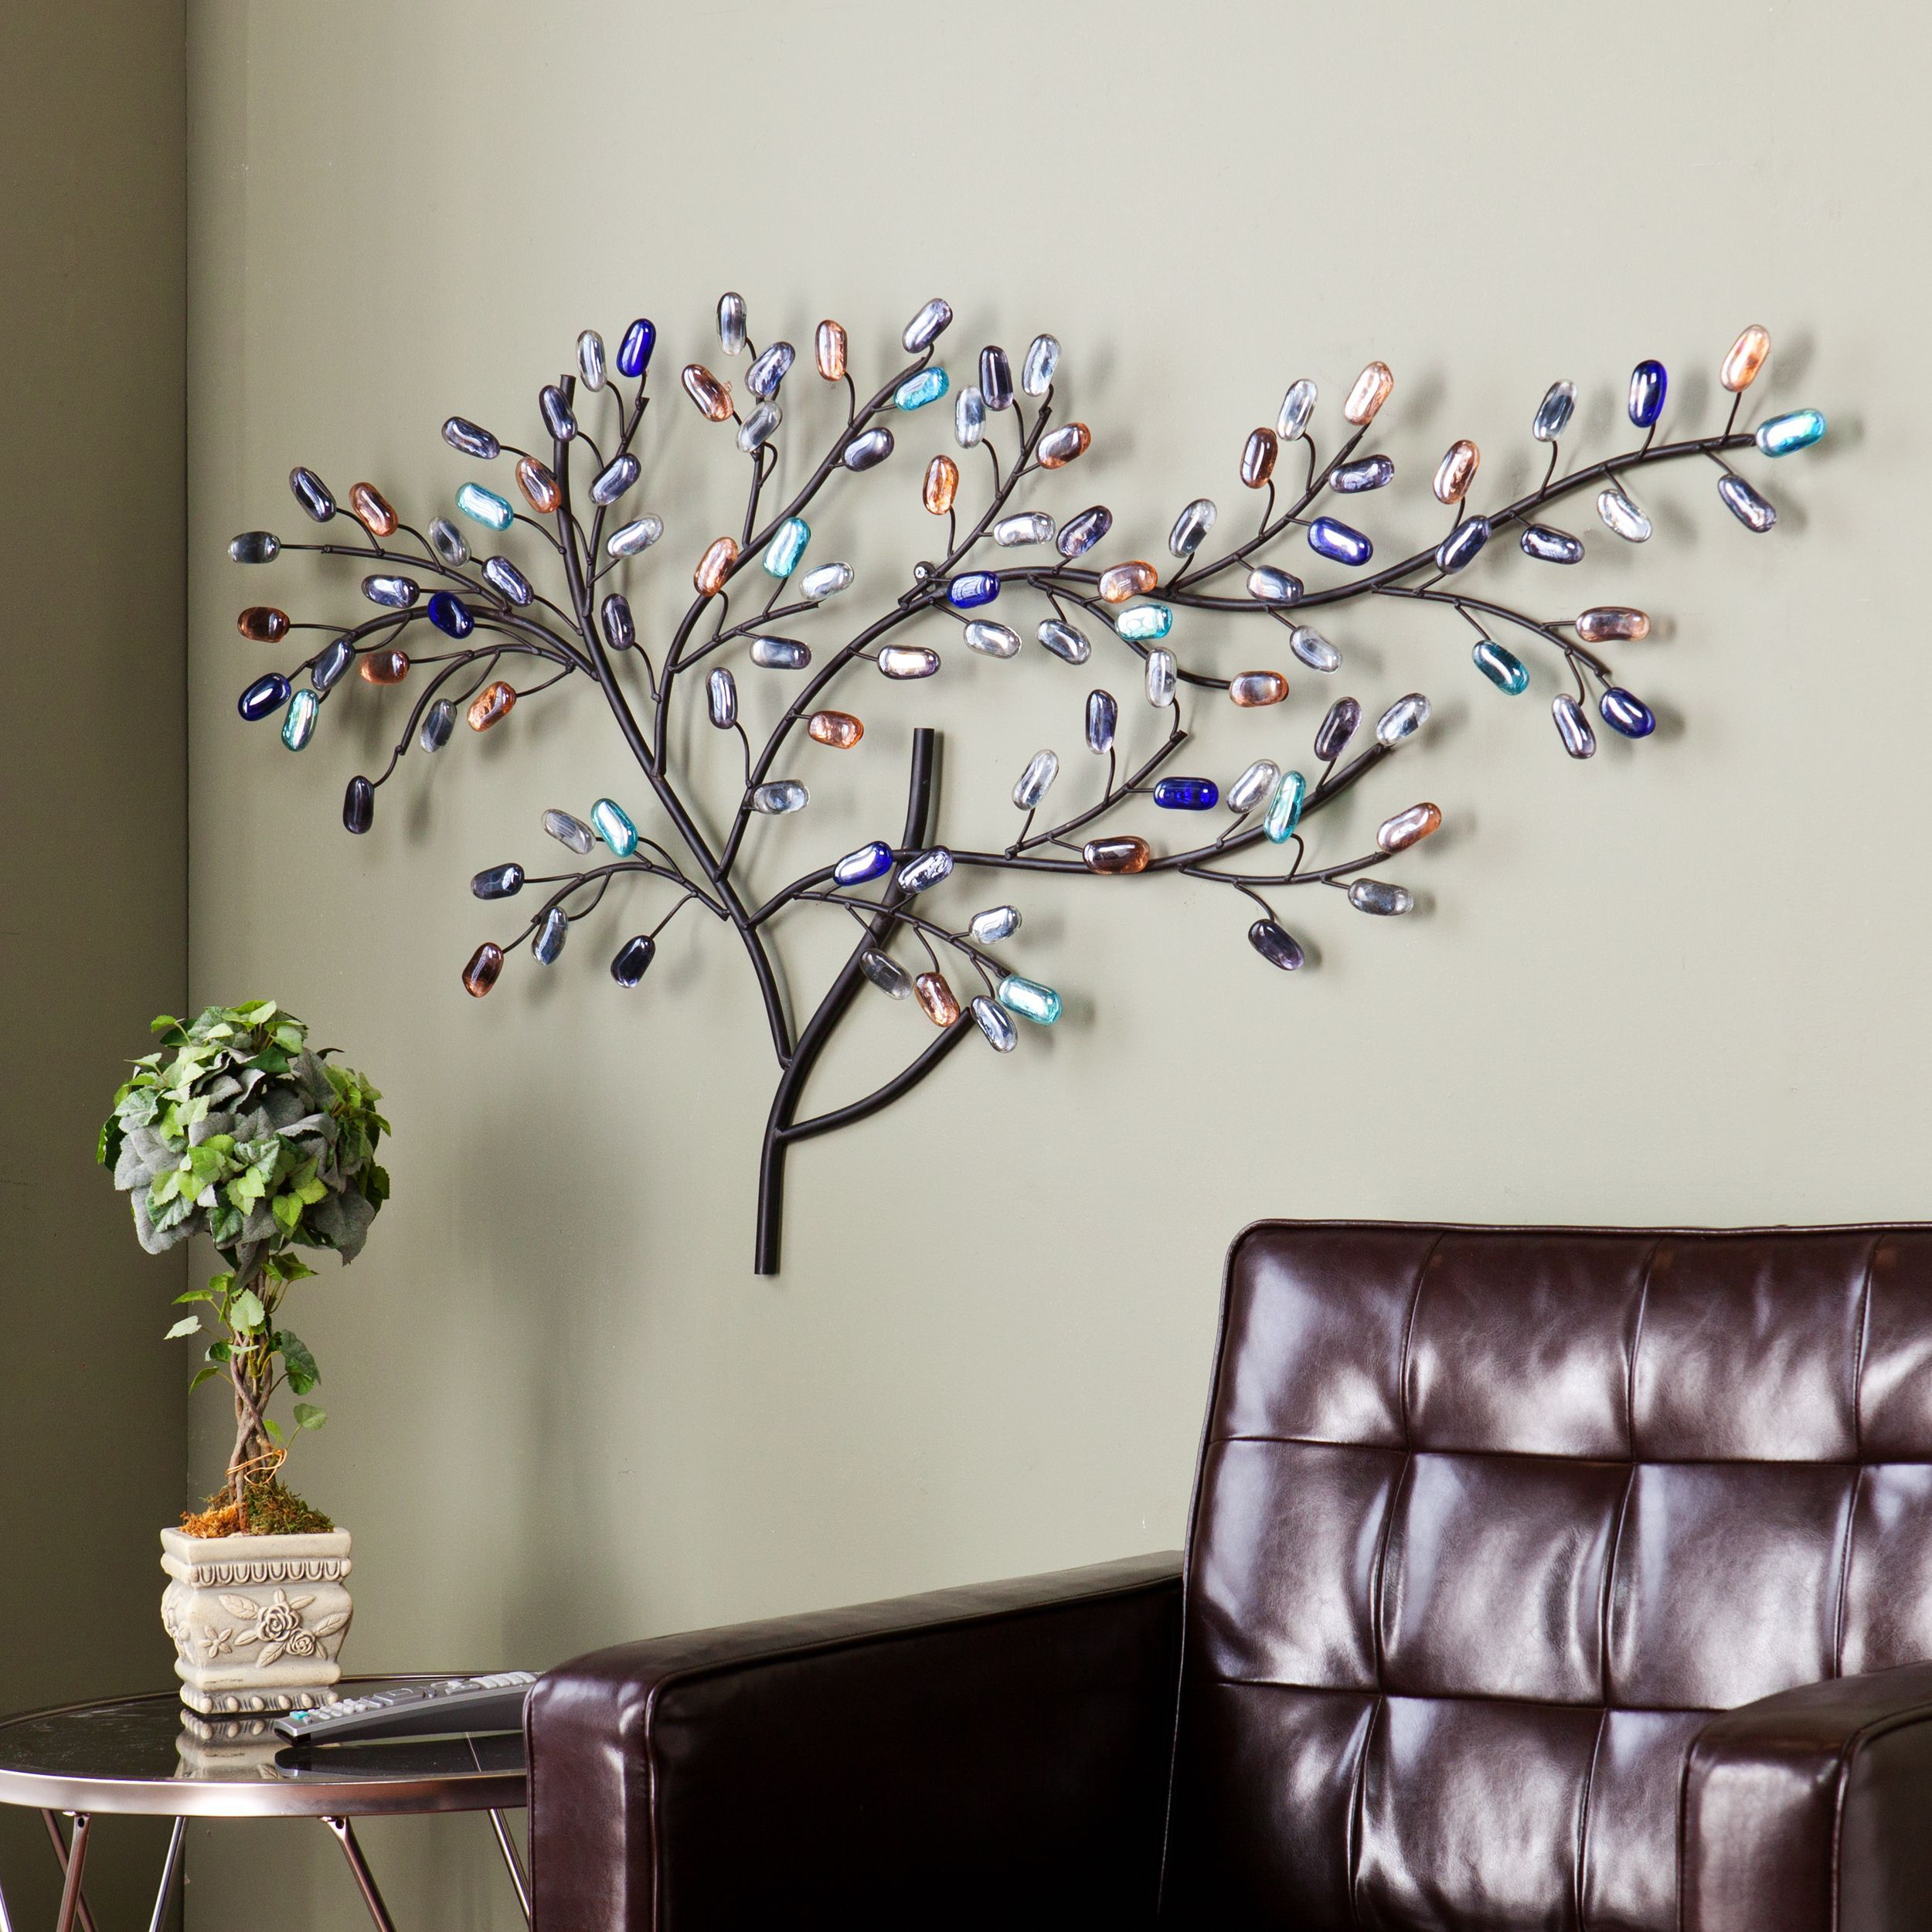 This Upton Home Willow Multicolor Metal/ Glass Tree Wall intended for Metal Leaf Wall Decor By Red Barrel Studio (Image 29 of 30)